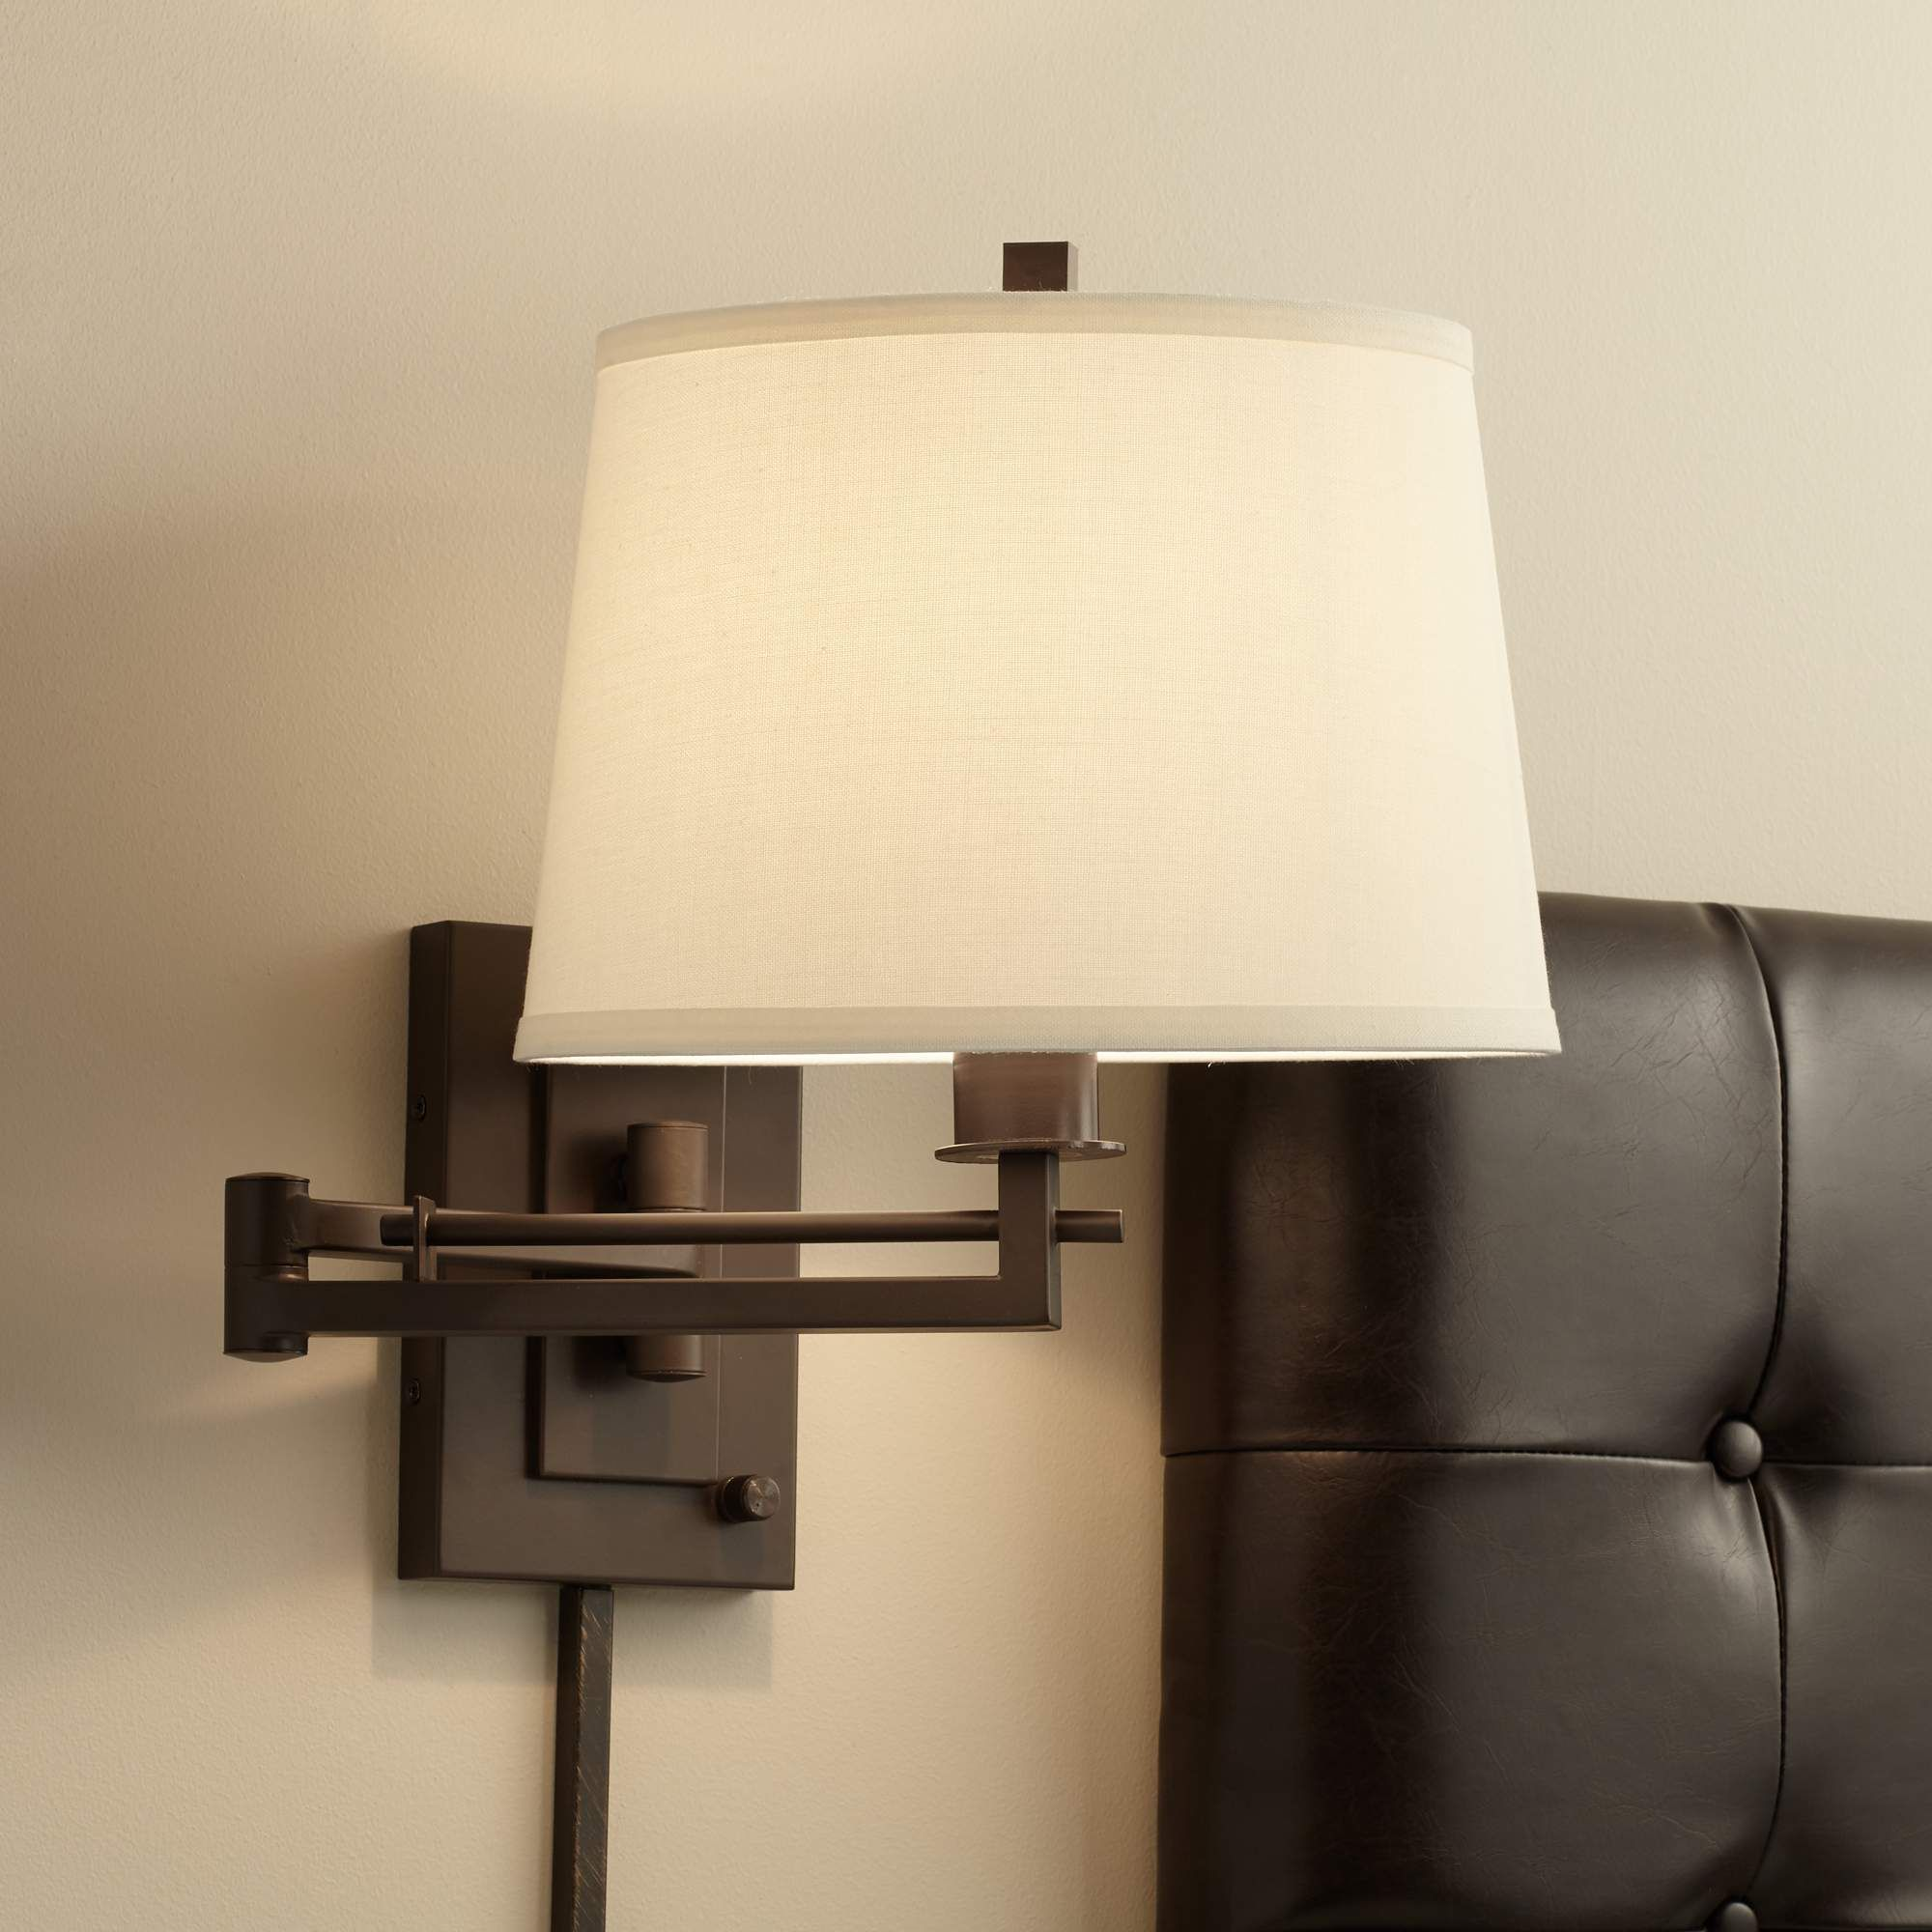 Easley matte bronze plug in swing arm wall lamp r4625 lamps